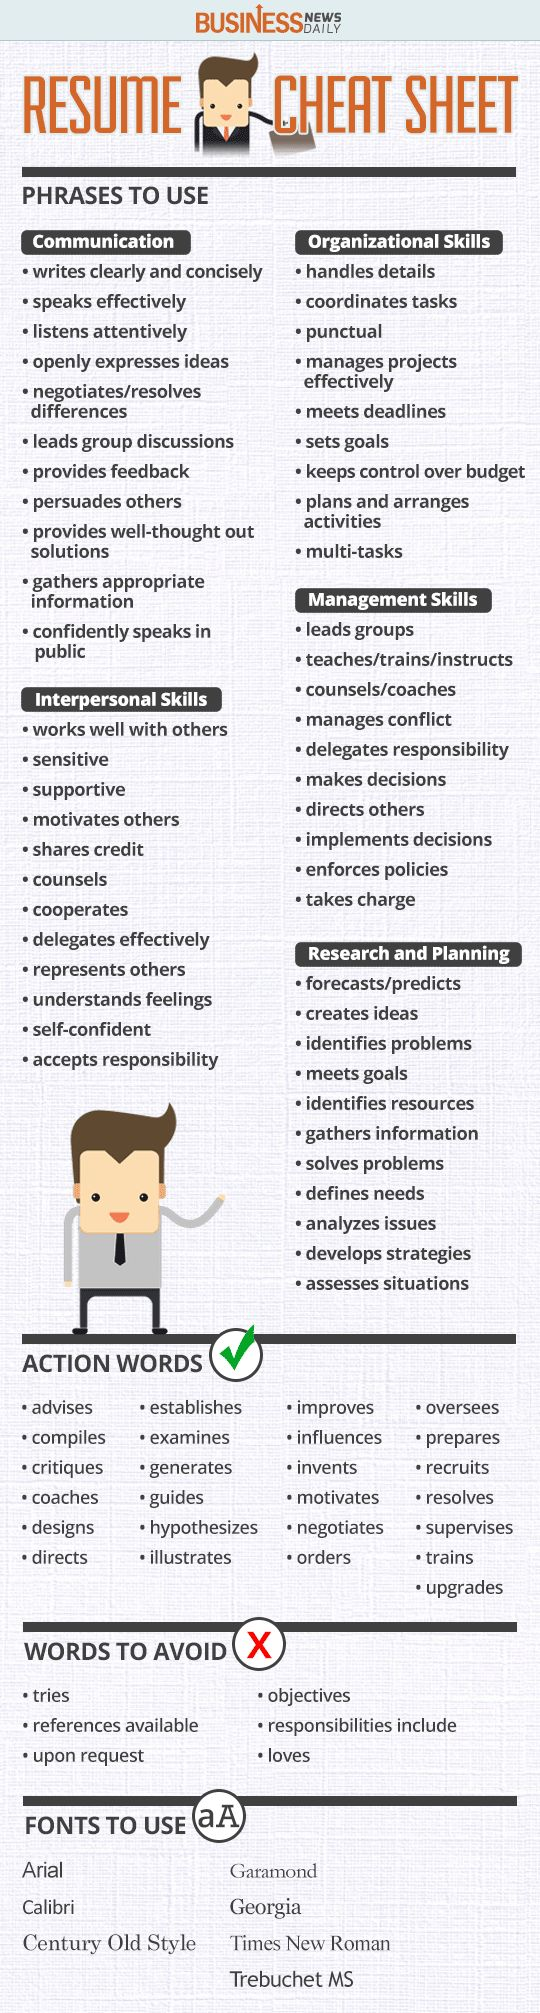 Opposenewapstandardsus  Mesmerizing  Ideas About Resume On Pinterest  Cv Format Resume Cv And  With Glamorous Resume Cheat Sheet Infographic Andrews Almost Done With A Complete Unit On Employment Which With Appealing Follow Up Email After Submitting Resume Also Nurse Assistant Resume In Addition Examples Of Resumes For High School Students And Resume Design Inspiration As Well As How To Make A Cover Page For A Resume Additionally Best Resume Designs From Pinterestcom With Opposenewapstandardsus  Glamorous  Ideas About Resume On Pinterest  Cv Format Resume Cv And  With Appealing Resume Cheat Sheet Infographic Andrews Almost Done With A Complete Unit On Employment Which And Mesmerizing Follow Up Email After Submitting Resume Also Nurse Assistant Resume In Addition Examples Of Resumes For High School Students From Pinterestcom